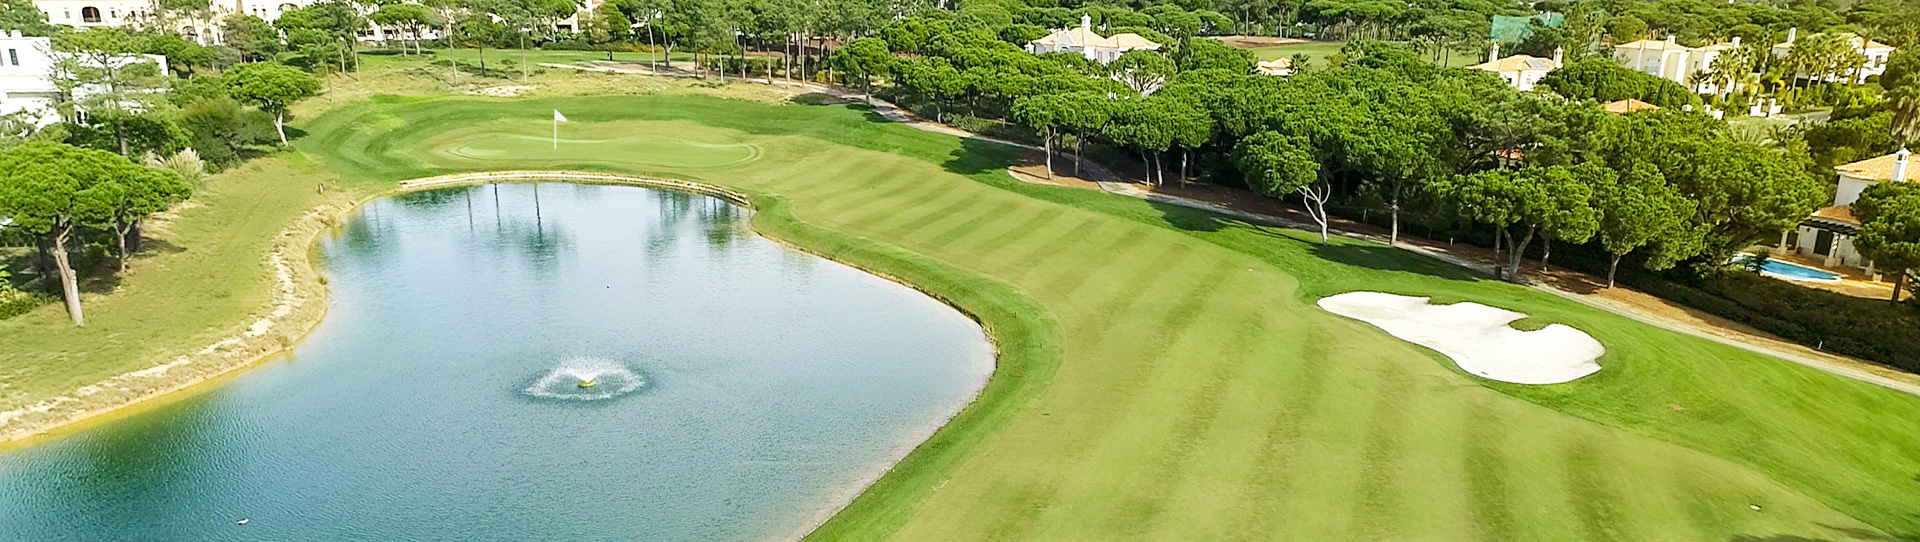 Quinta do Lago Golf Experience - Photo 1